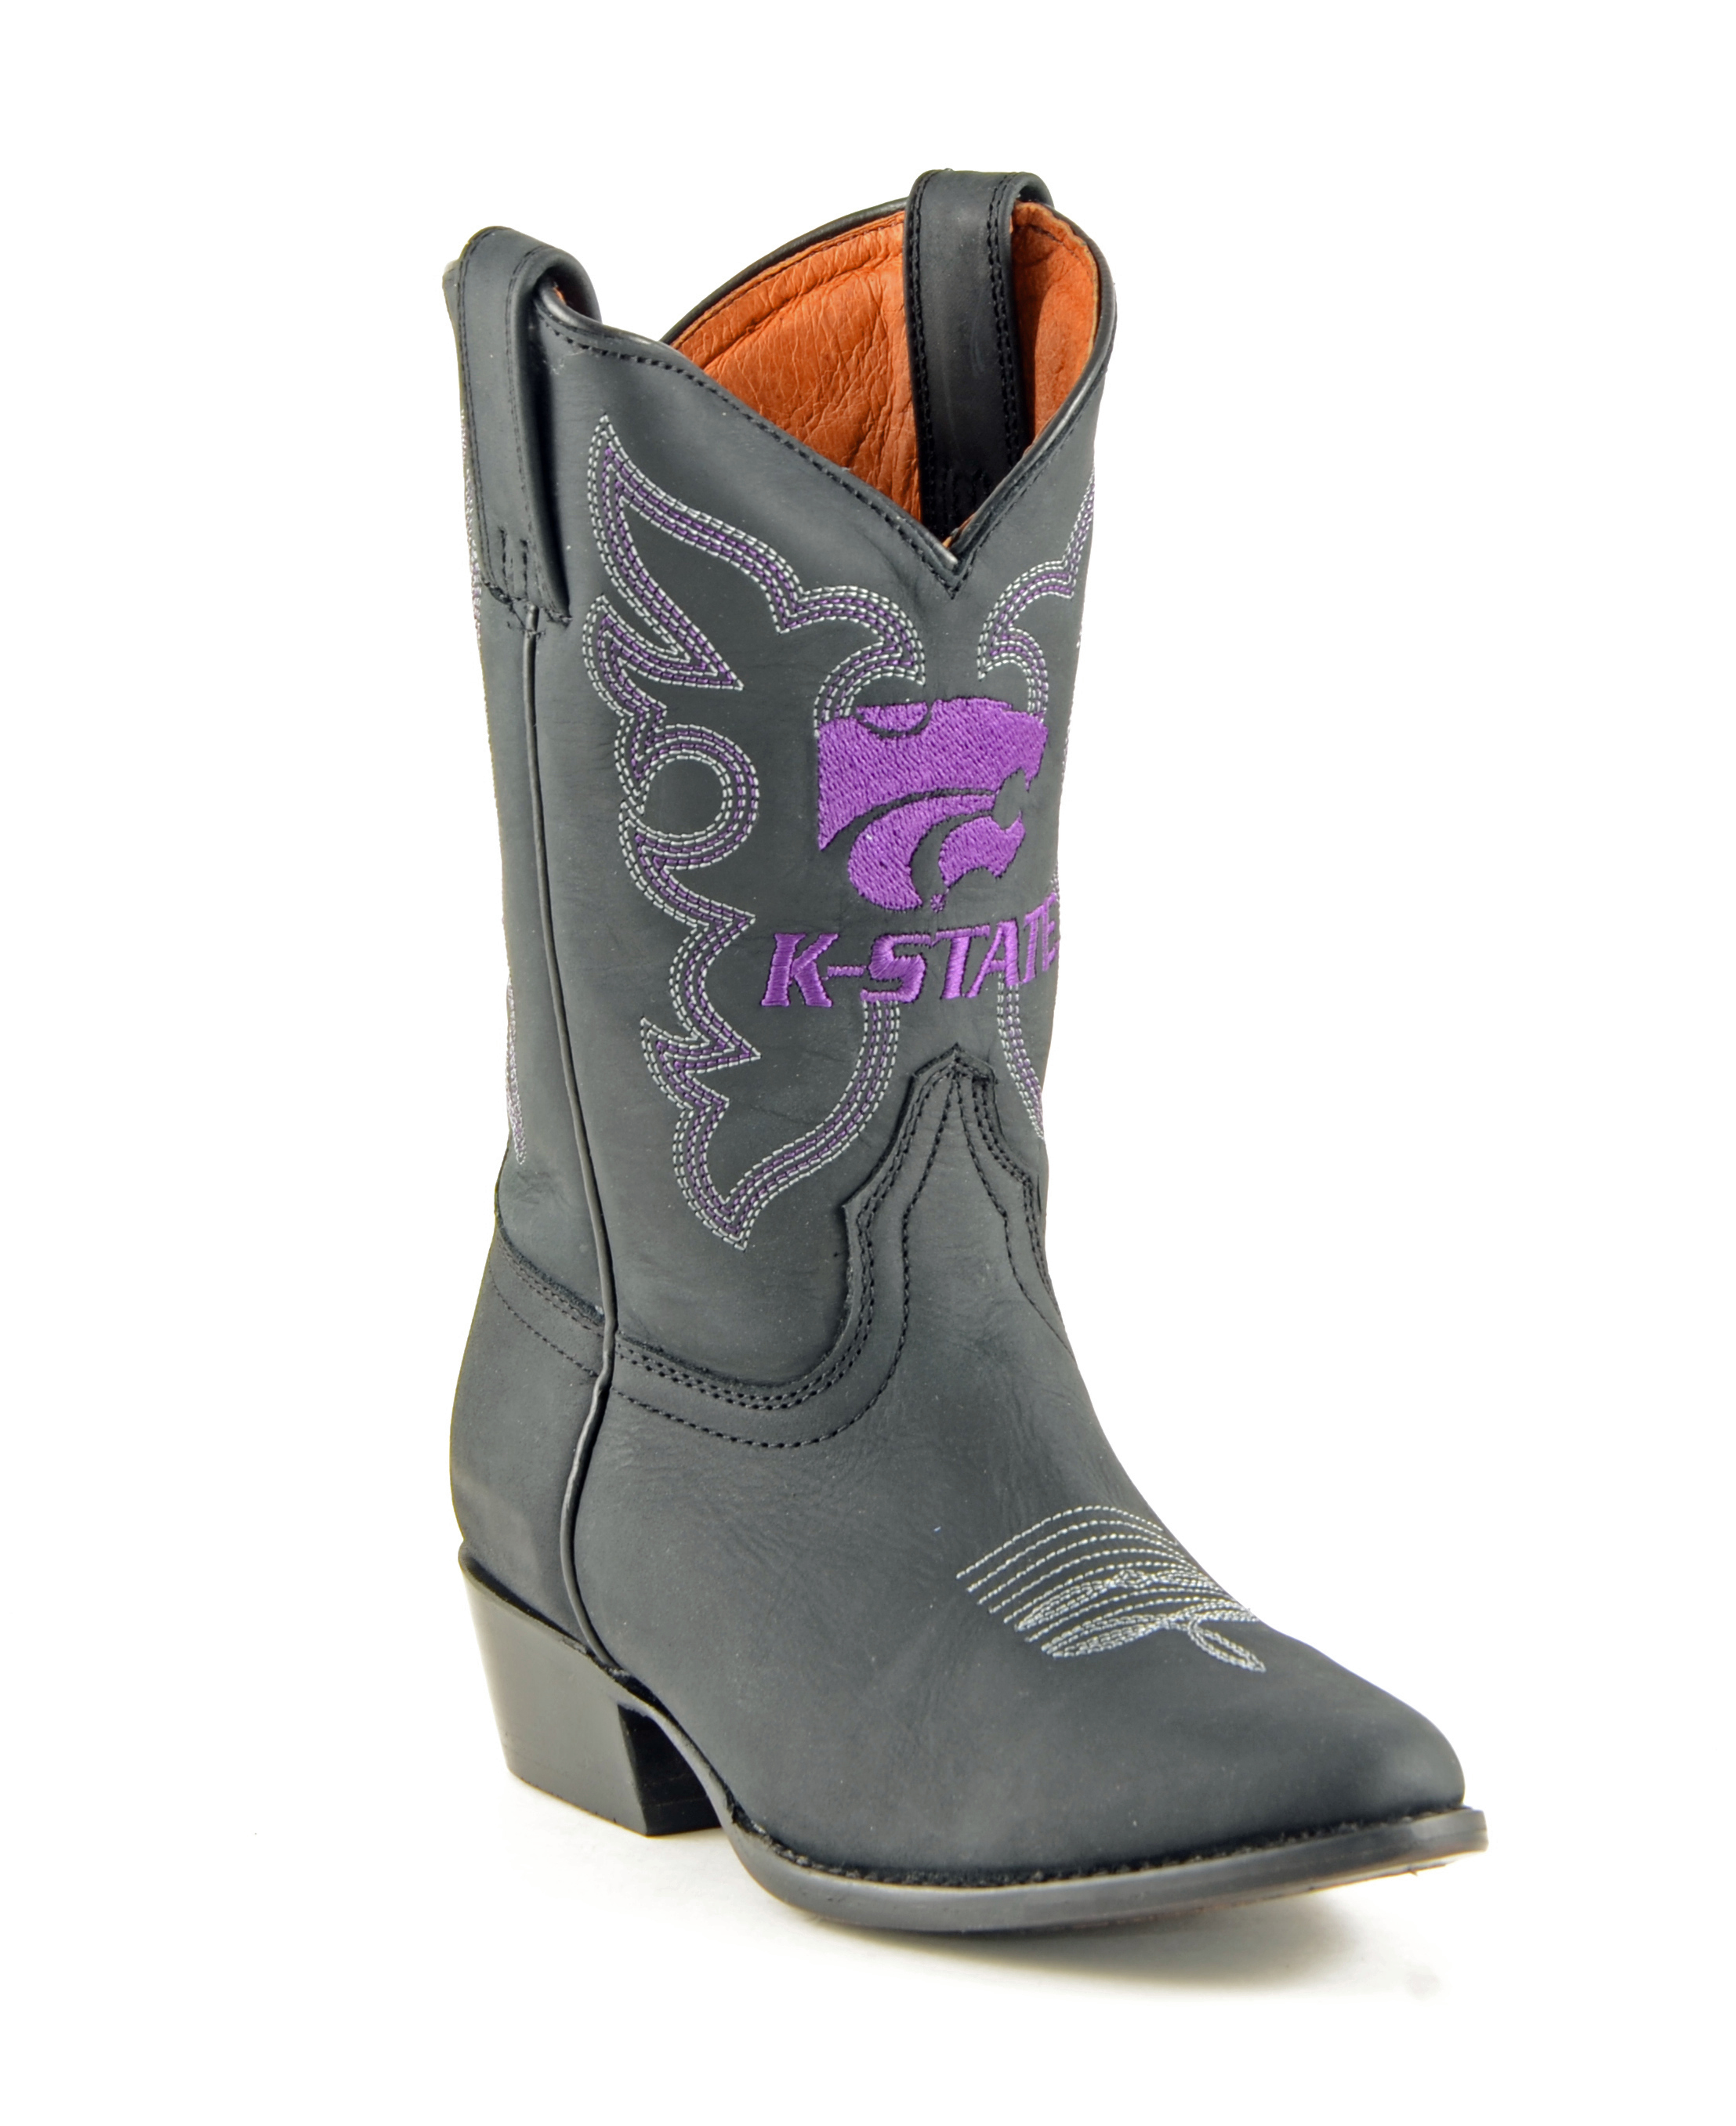 Gameday Boots Boys Cowboy College Team Kansas State Black KST-B015-2 by Gameday Boots